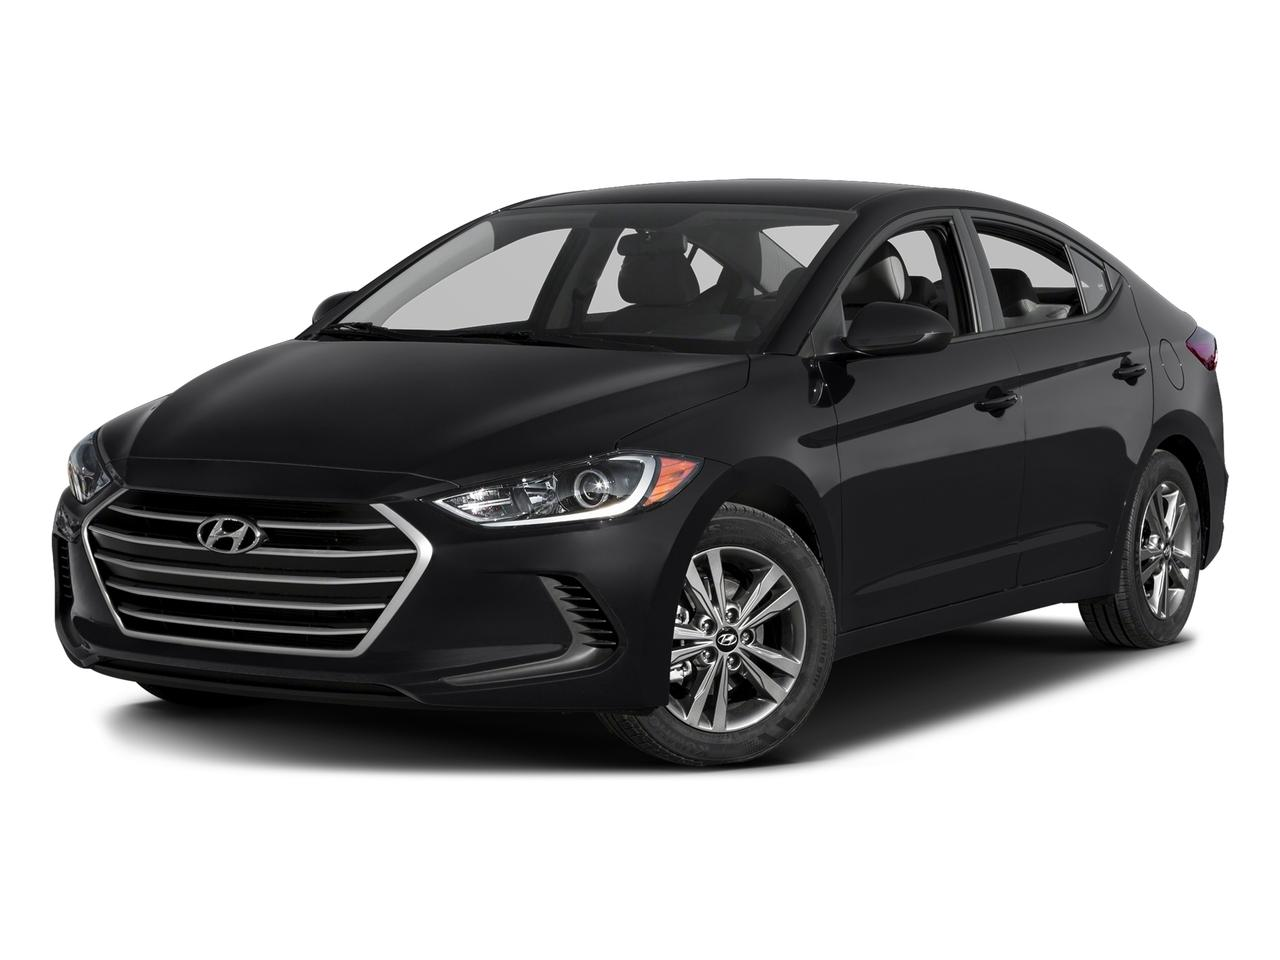 2017 Hyundai Elantra Vehicle Photo in Edinburg, TX 78539